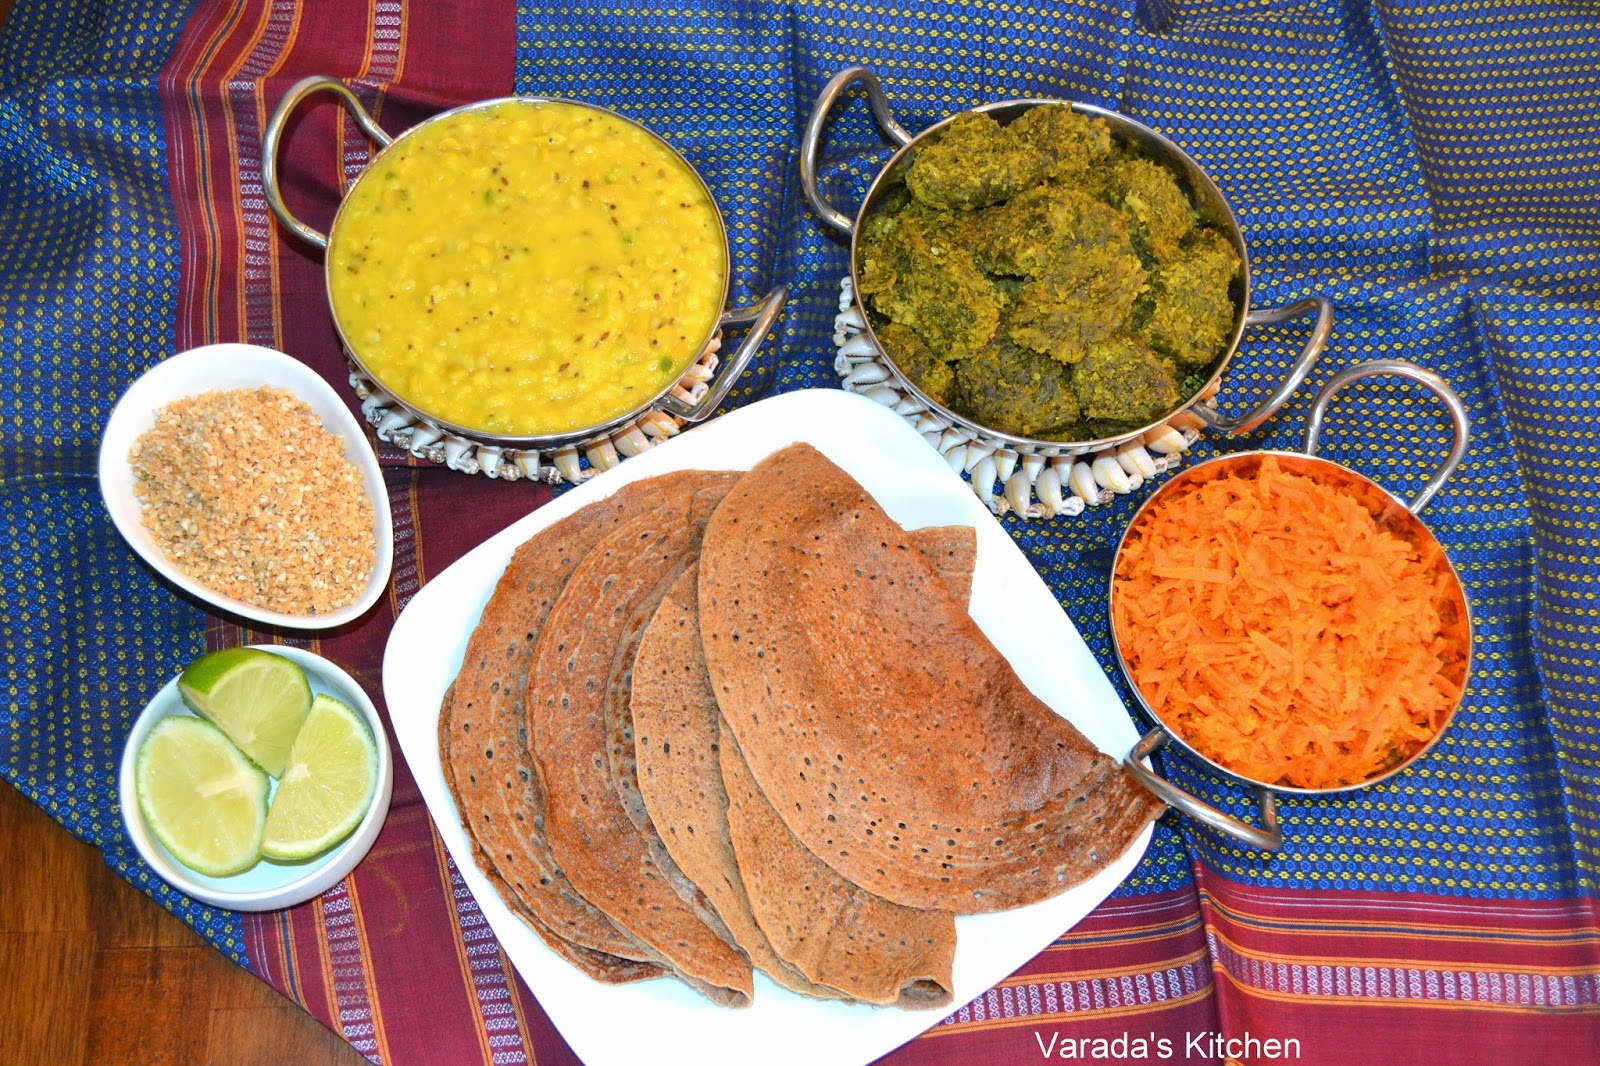 Varadas kitchen traditional maharashtrian meal a maharashtrian meal generally starts with dalwaransada waran with rice the next course is poli or chapati the last course is yogurt or buttermilk with forumfinder Image collections